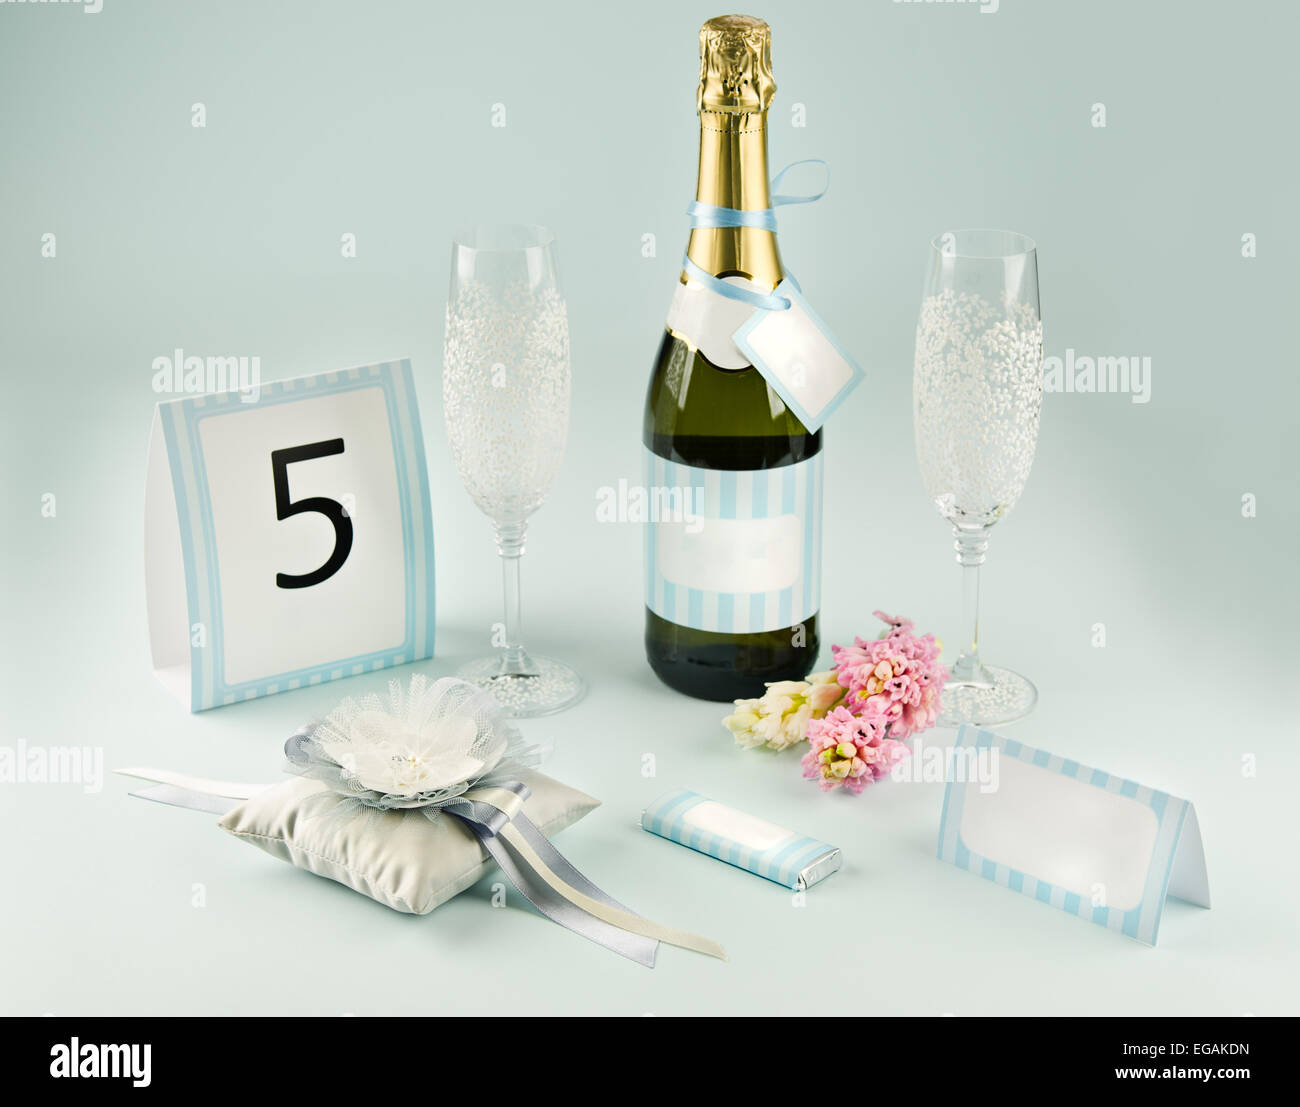 Wedding Table Accessories With Champagne Bottle And Glasses Stock